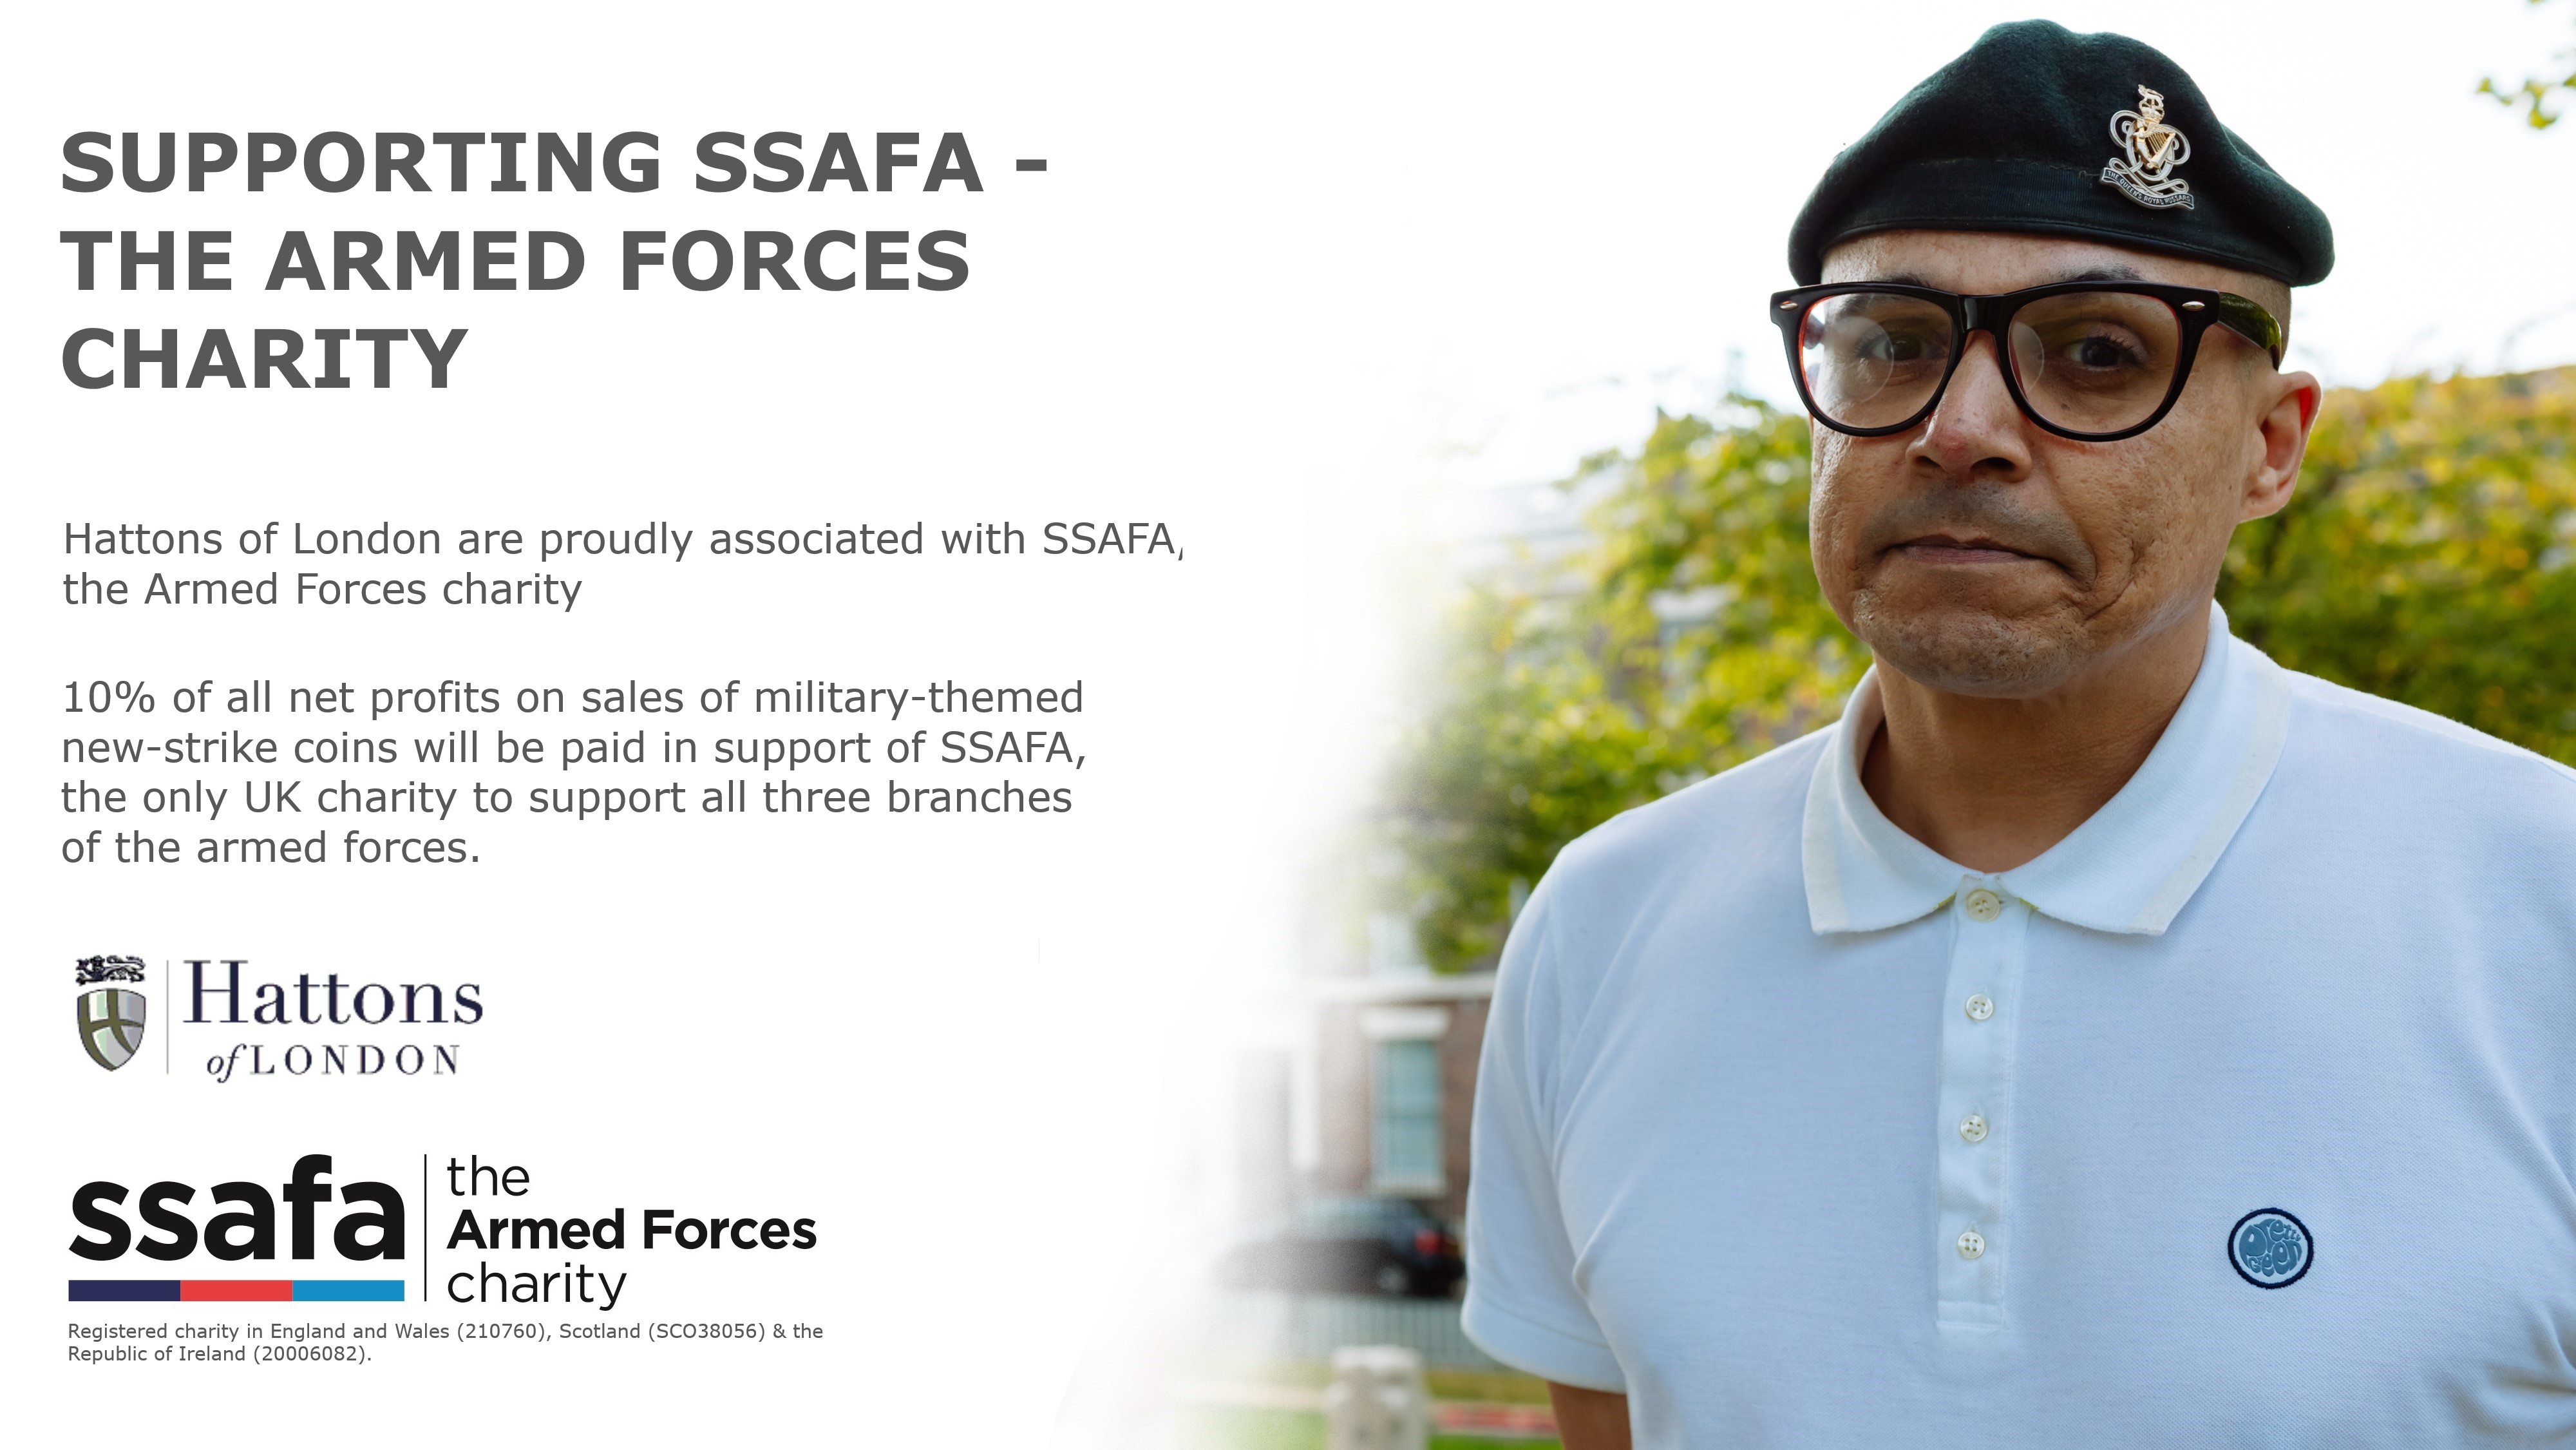 Hattons of London supporting SSAFA the Armed Forces charity